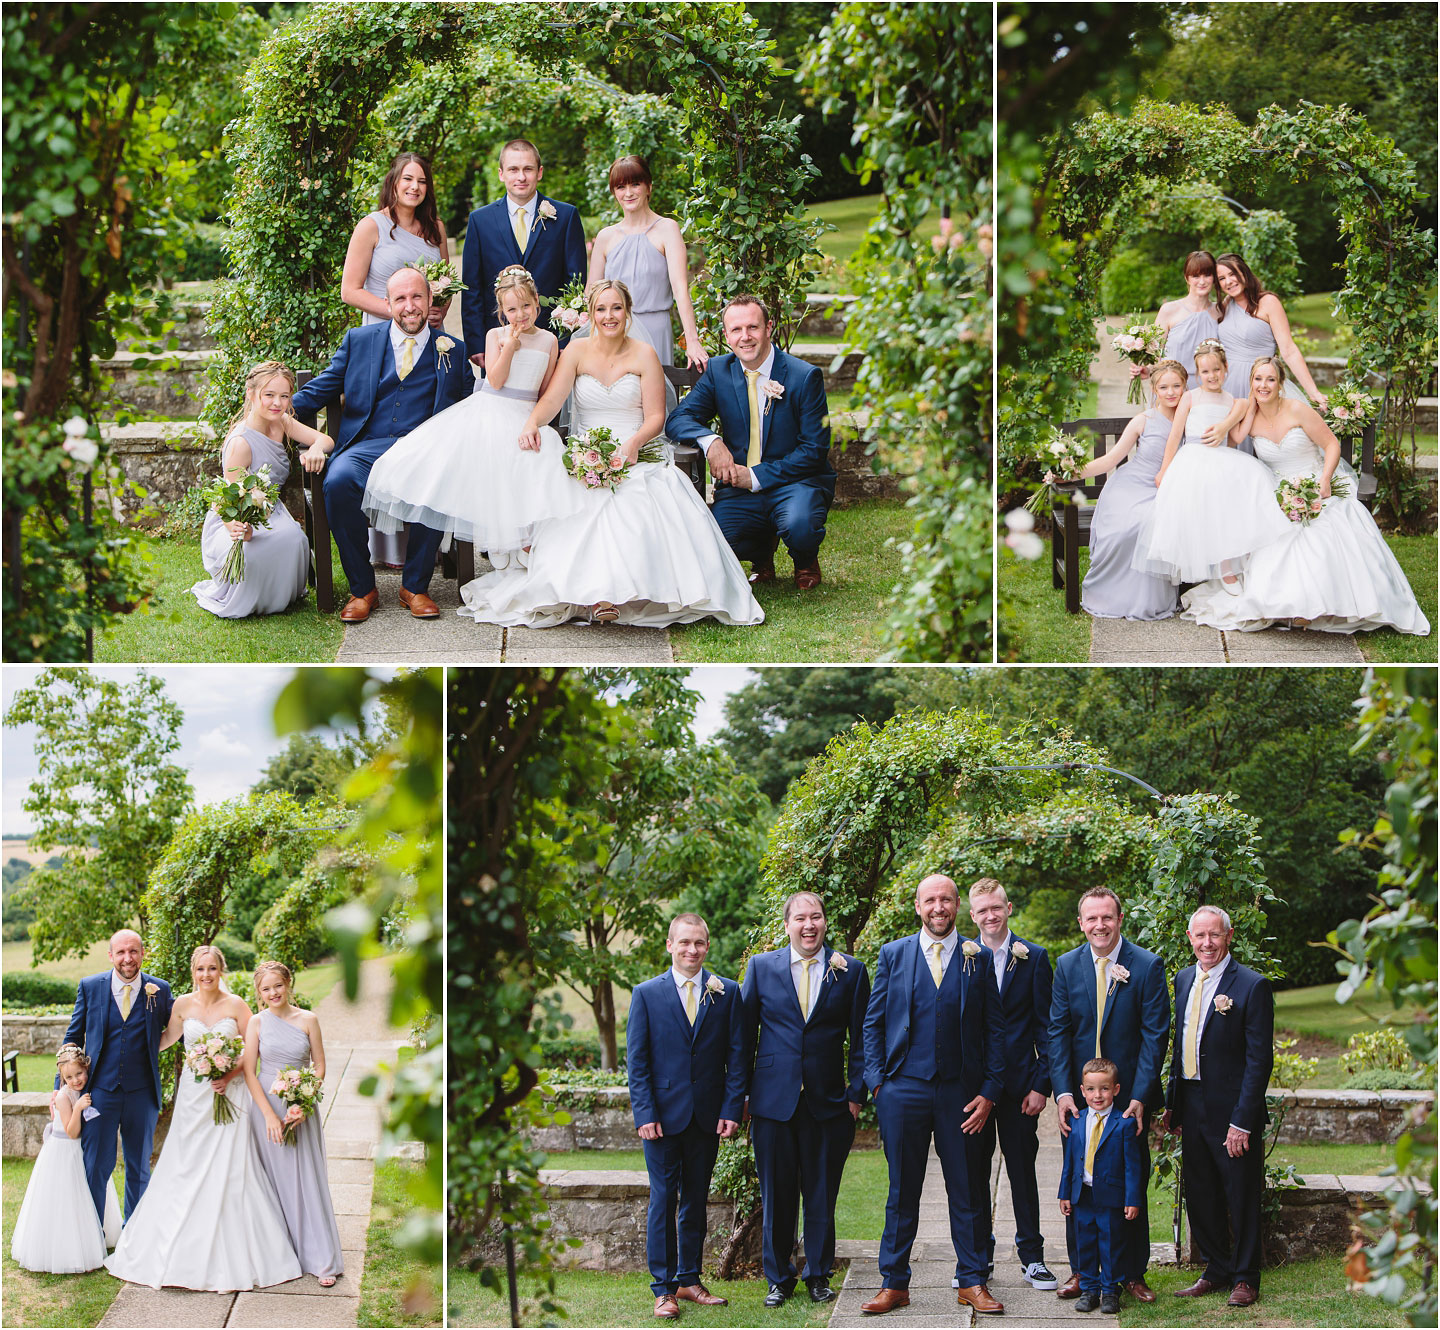 Wood Hall Hotel wedding party group photos, Wood Hall Wedding Photos, Wood Hall Wedding Photographer